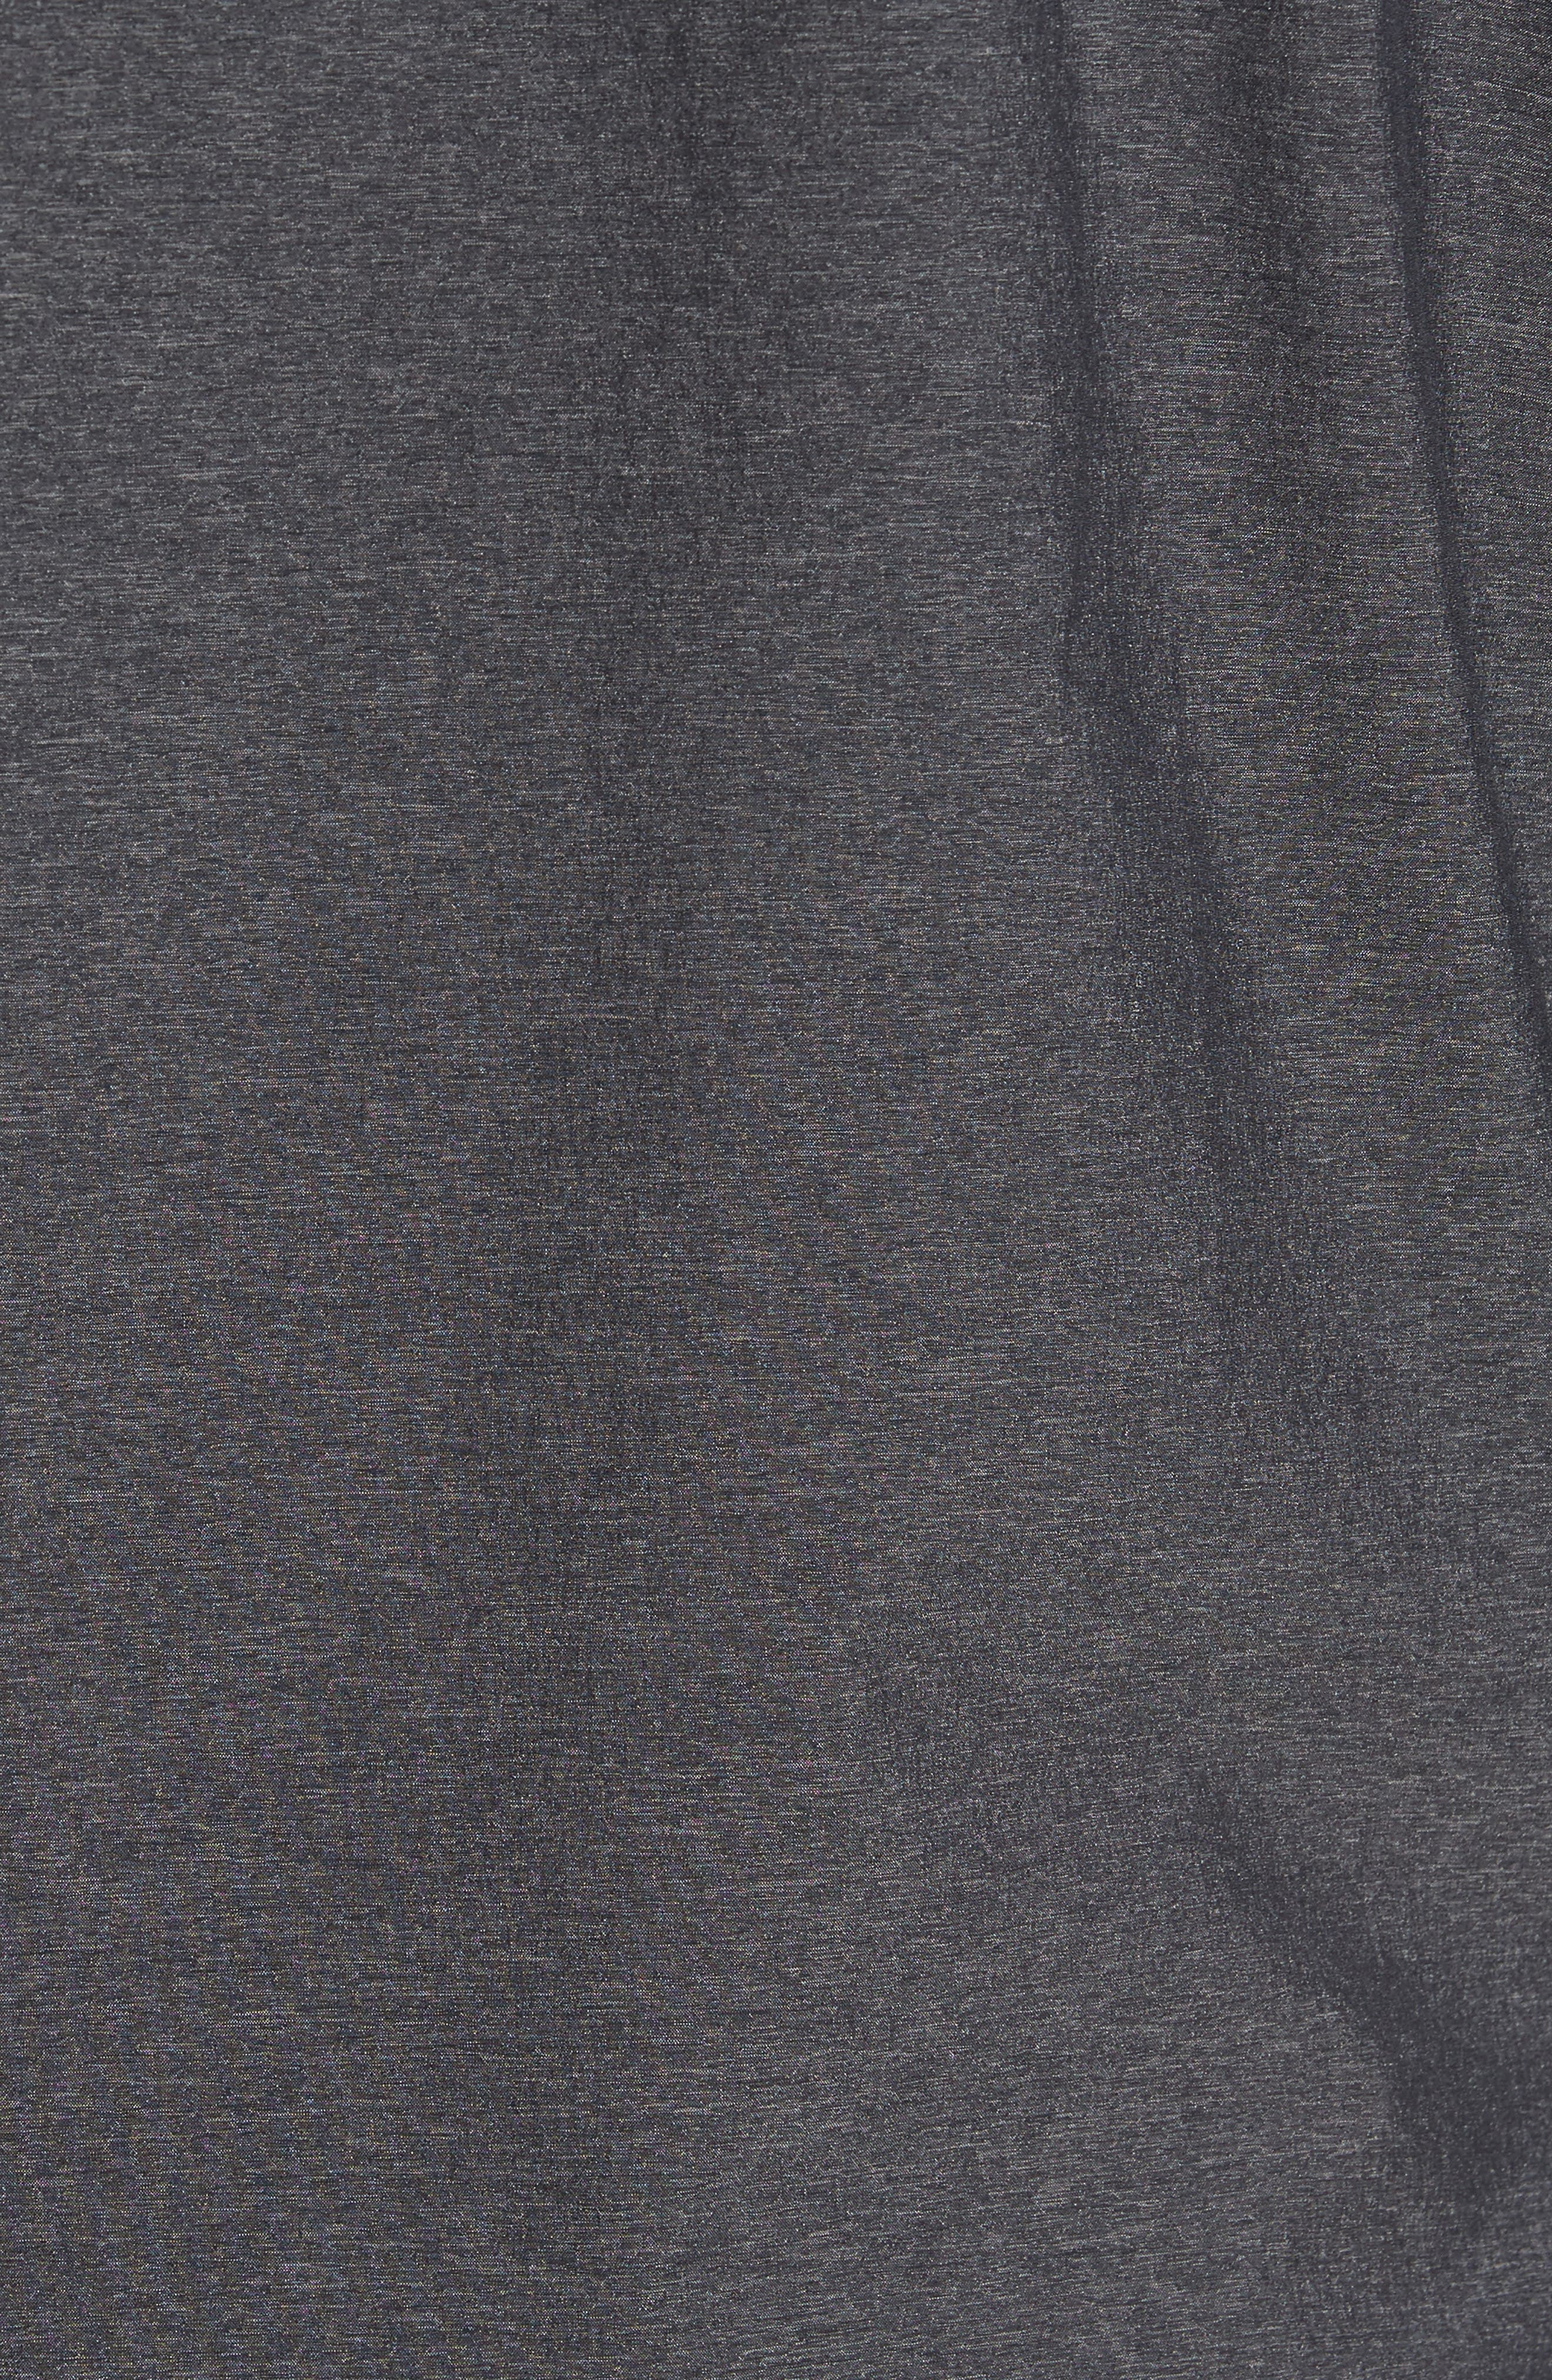 Knit & Woven Hoodie,                             Alternate thumbnail 6, color,                             021